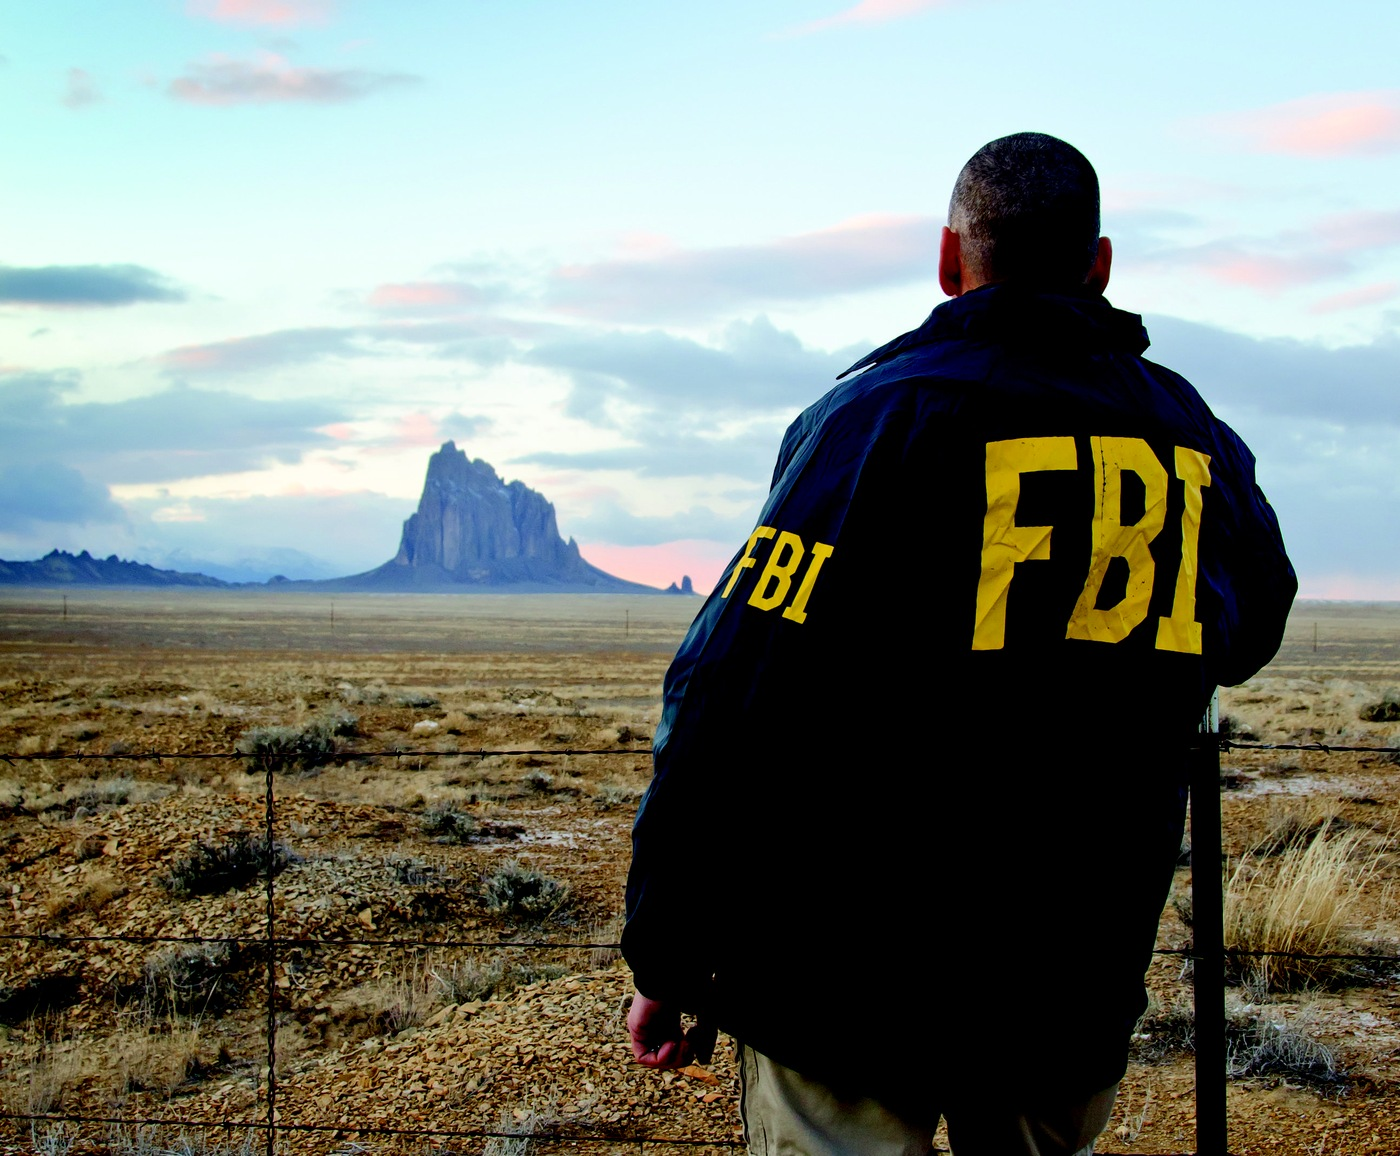 A special agent overlooks the Shiprock land formation on the Navajo Nation in New Mexico. The reservation, the largest in the country, is one of about 200 federally recognized Indian reservations where the FBI has investigative responsibilities.